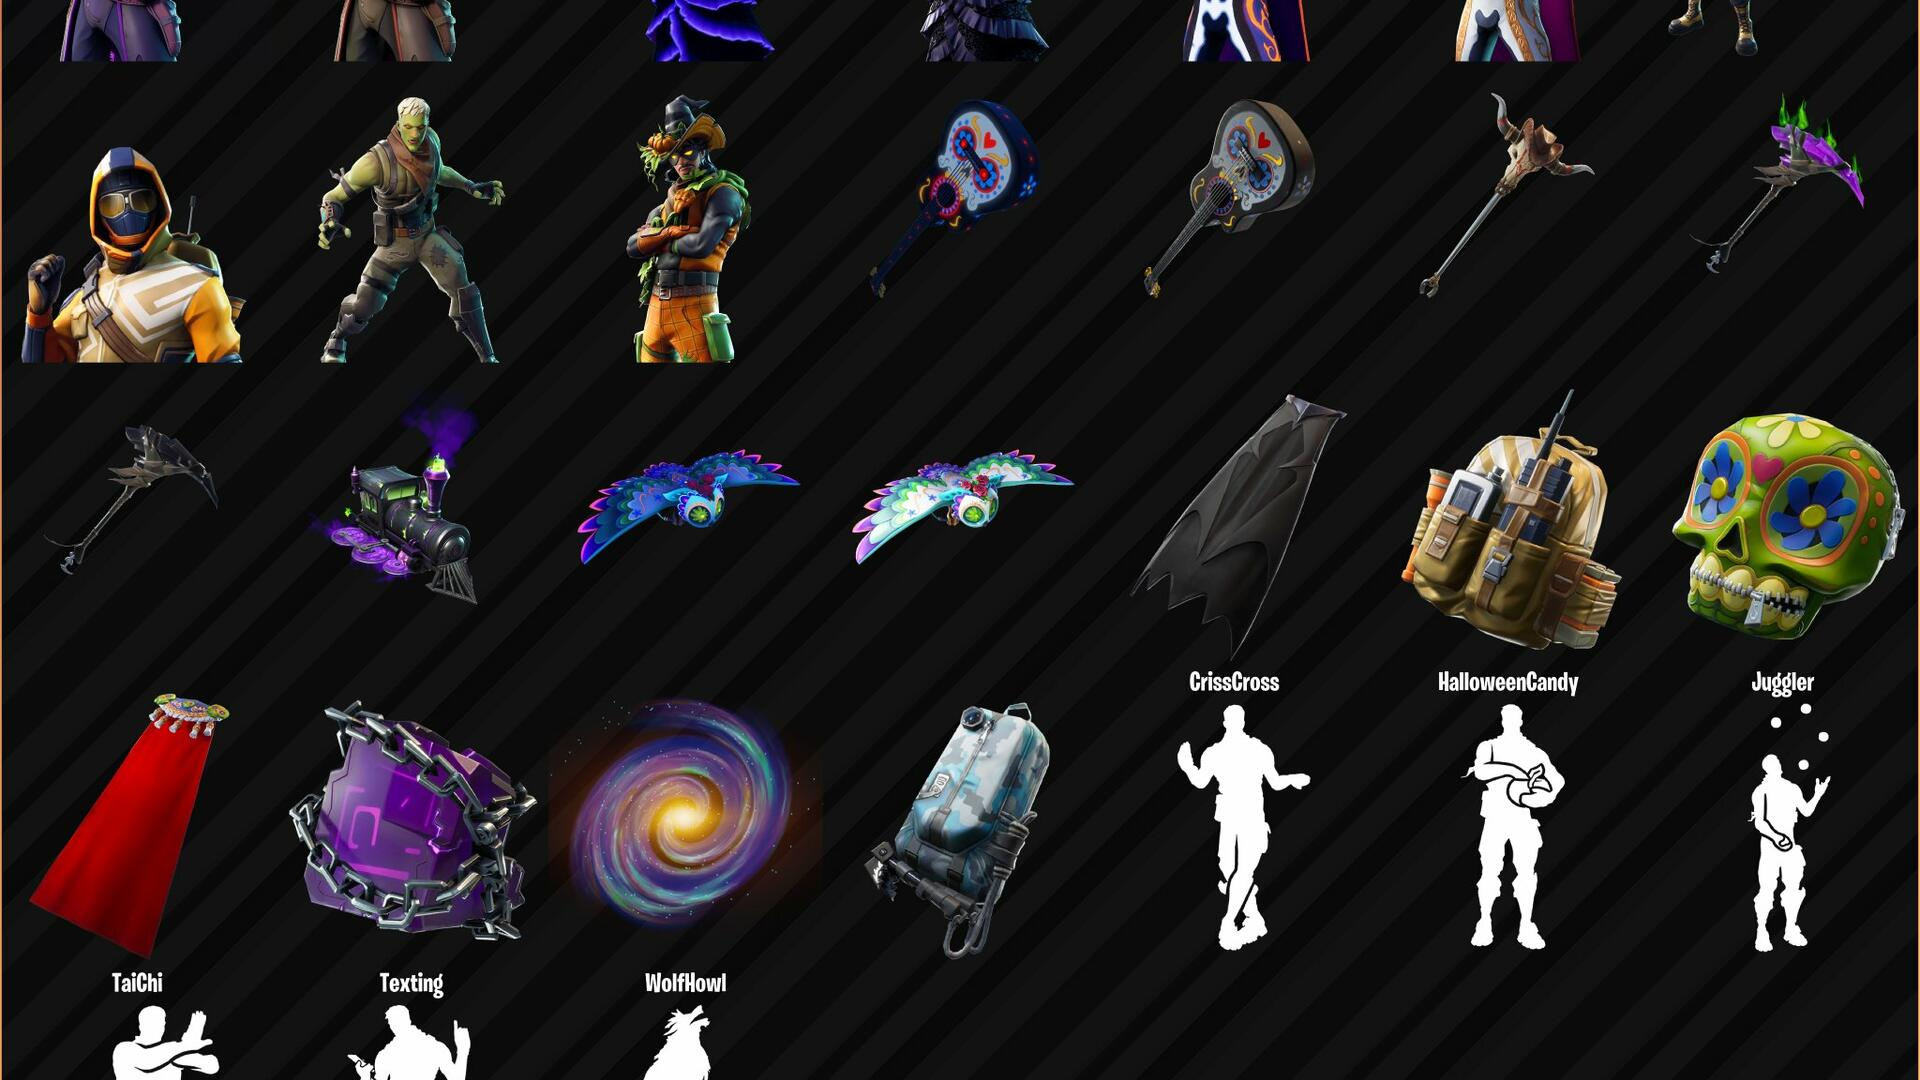 New Fortnite Skins Leaked After Fortnitemares Update